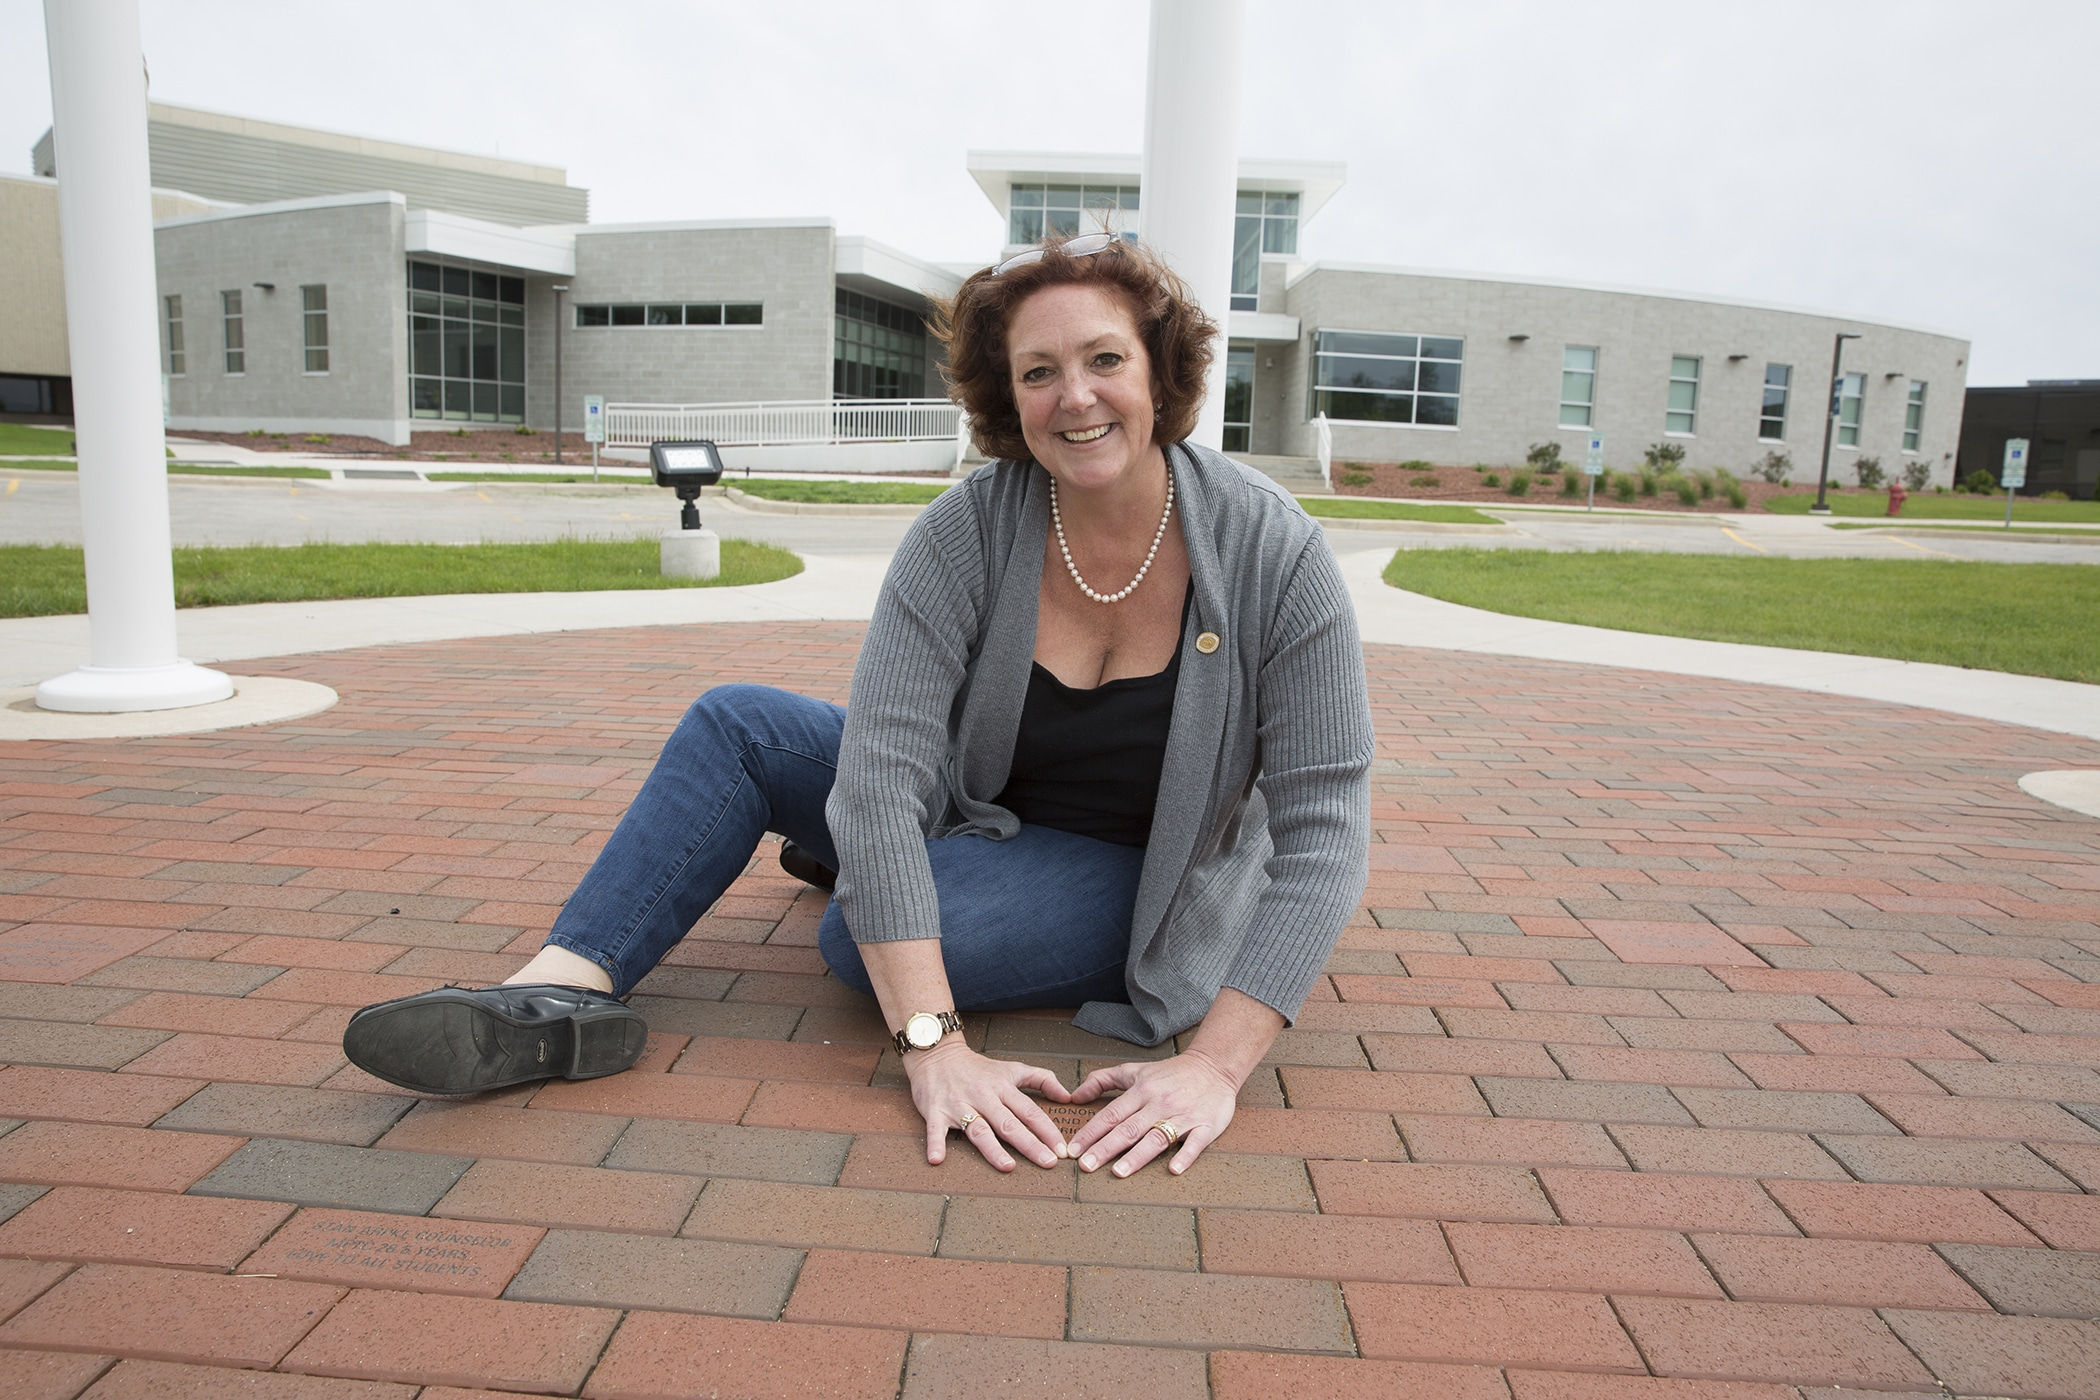 Heather Evenson makes a heart shape with her hands over a memorial brick outside of Moraine Park